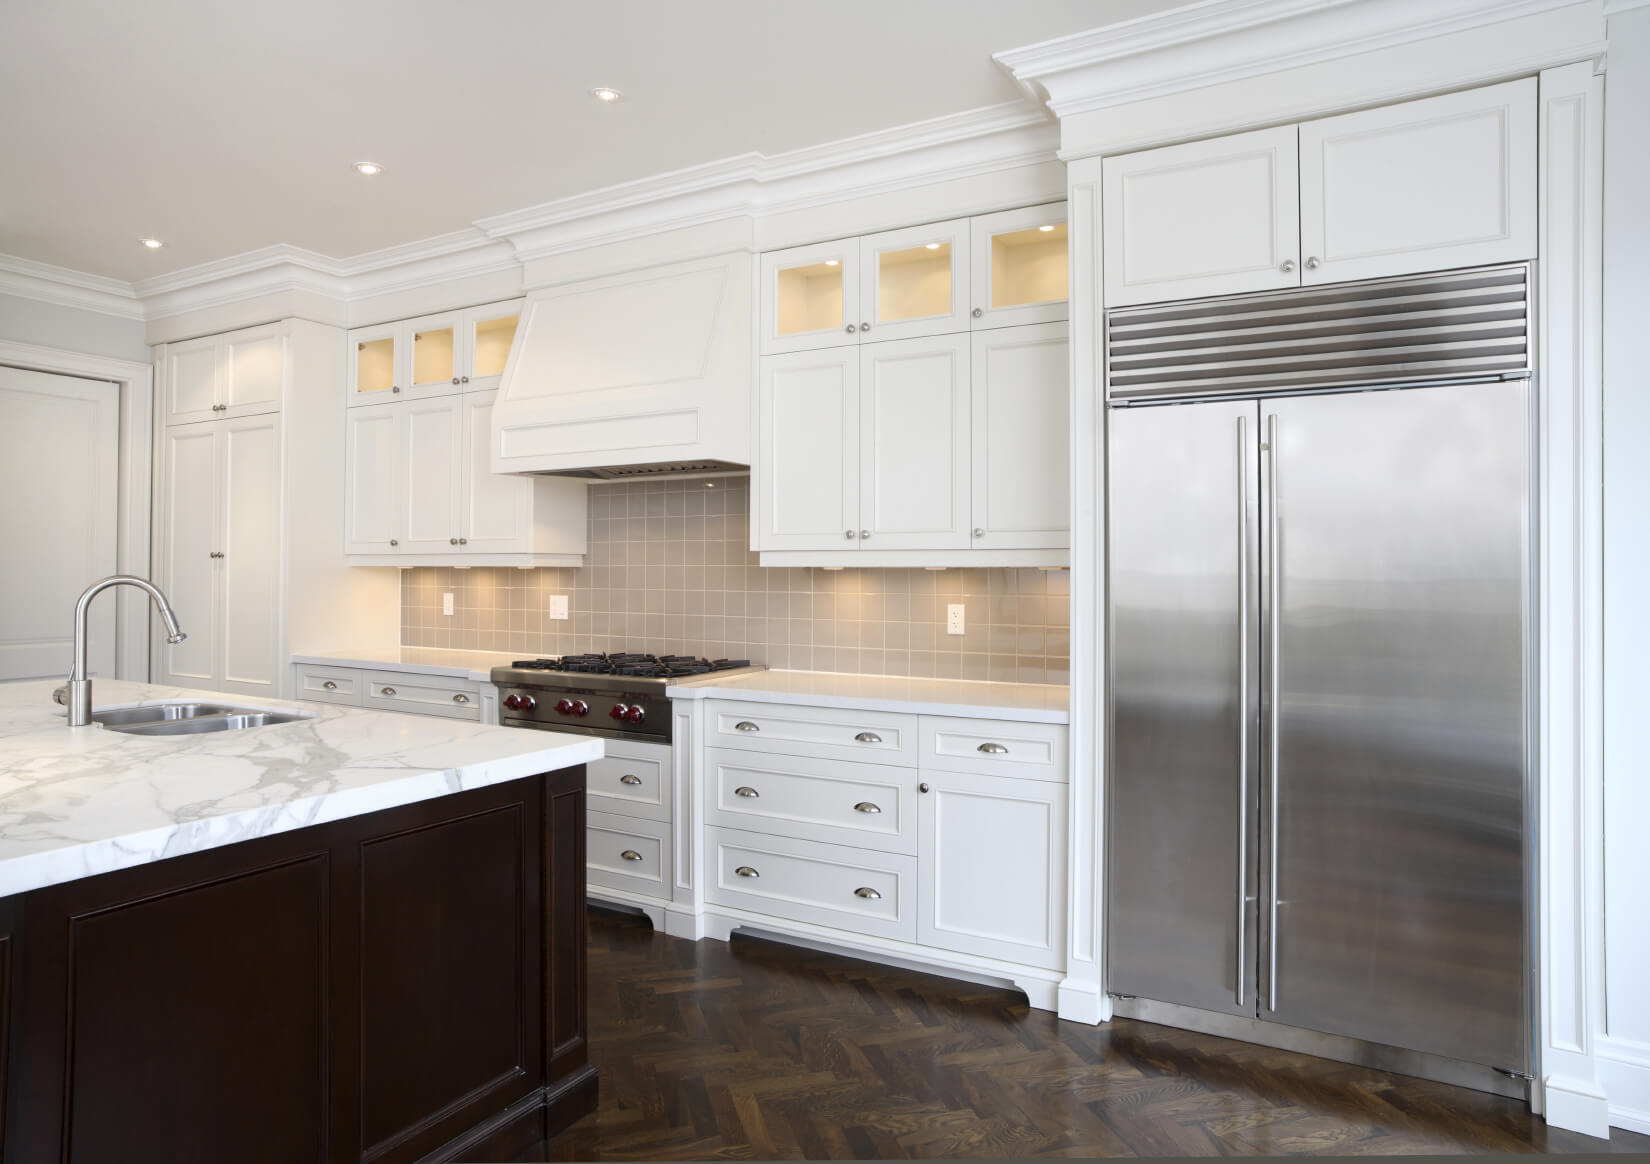 Modern Kitchen Racks wonderful custom modern kitchen cabinets rich cabinetry personal